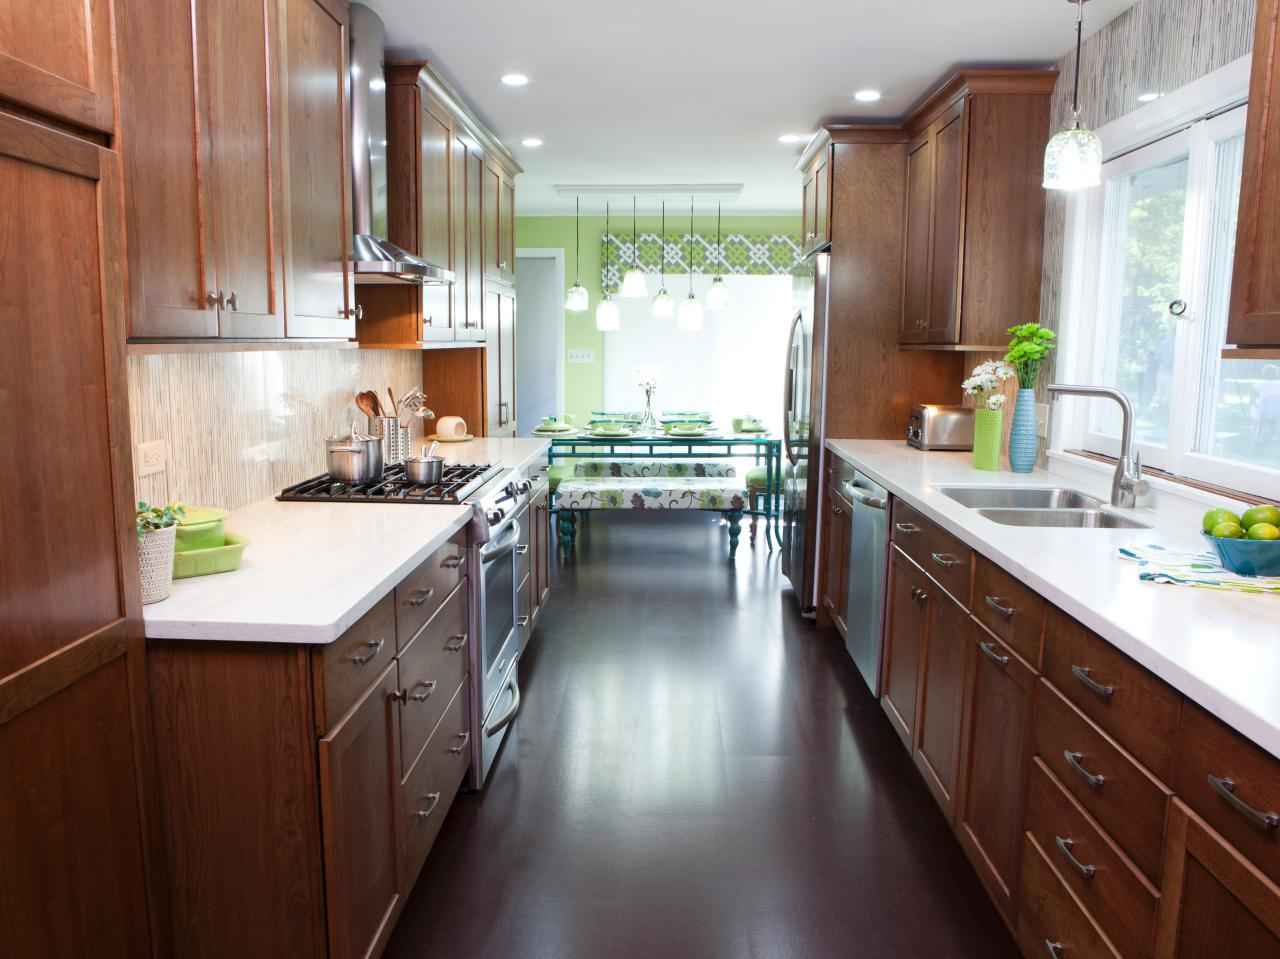 Galley Kitchen Ideas: Steps To Plan To Set Up Galley